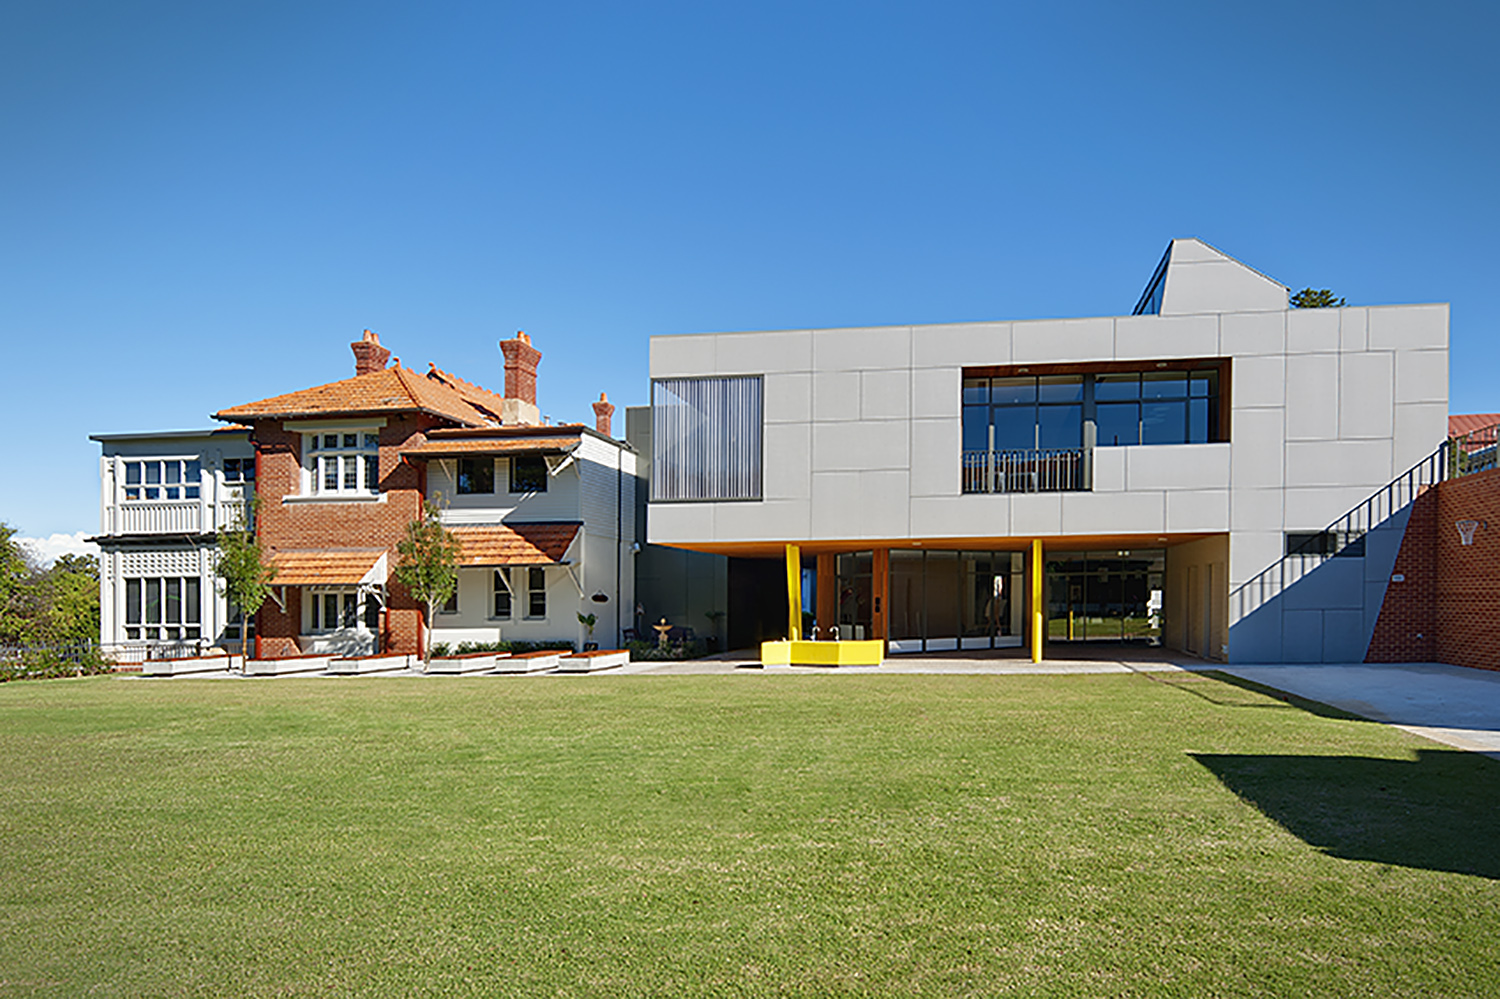 Perth-College-Early-Years-Mount-Lawley-Perth-Architecture6.jpg